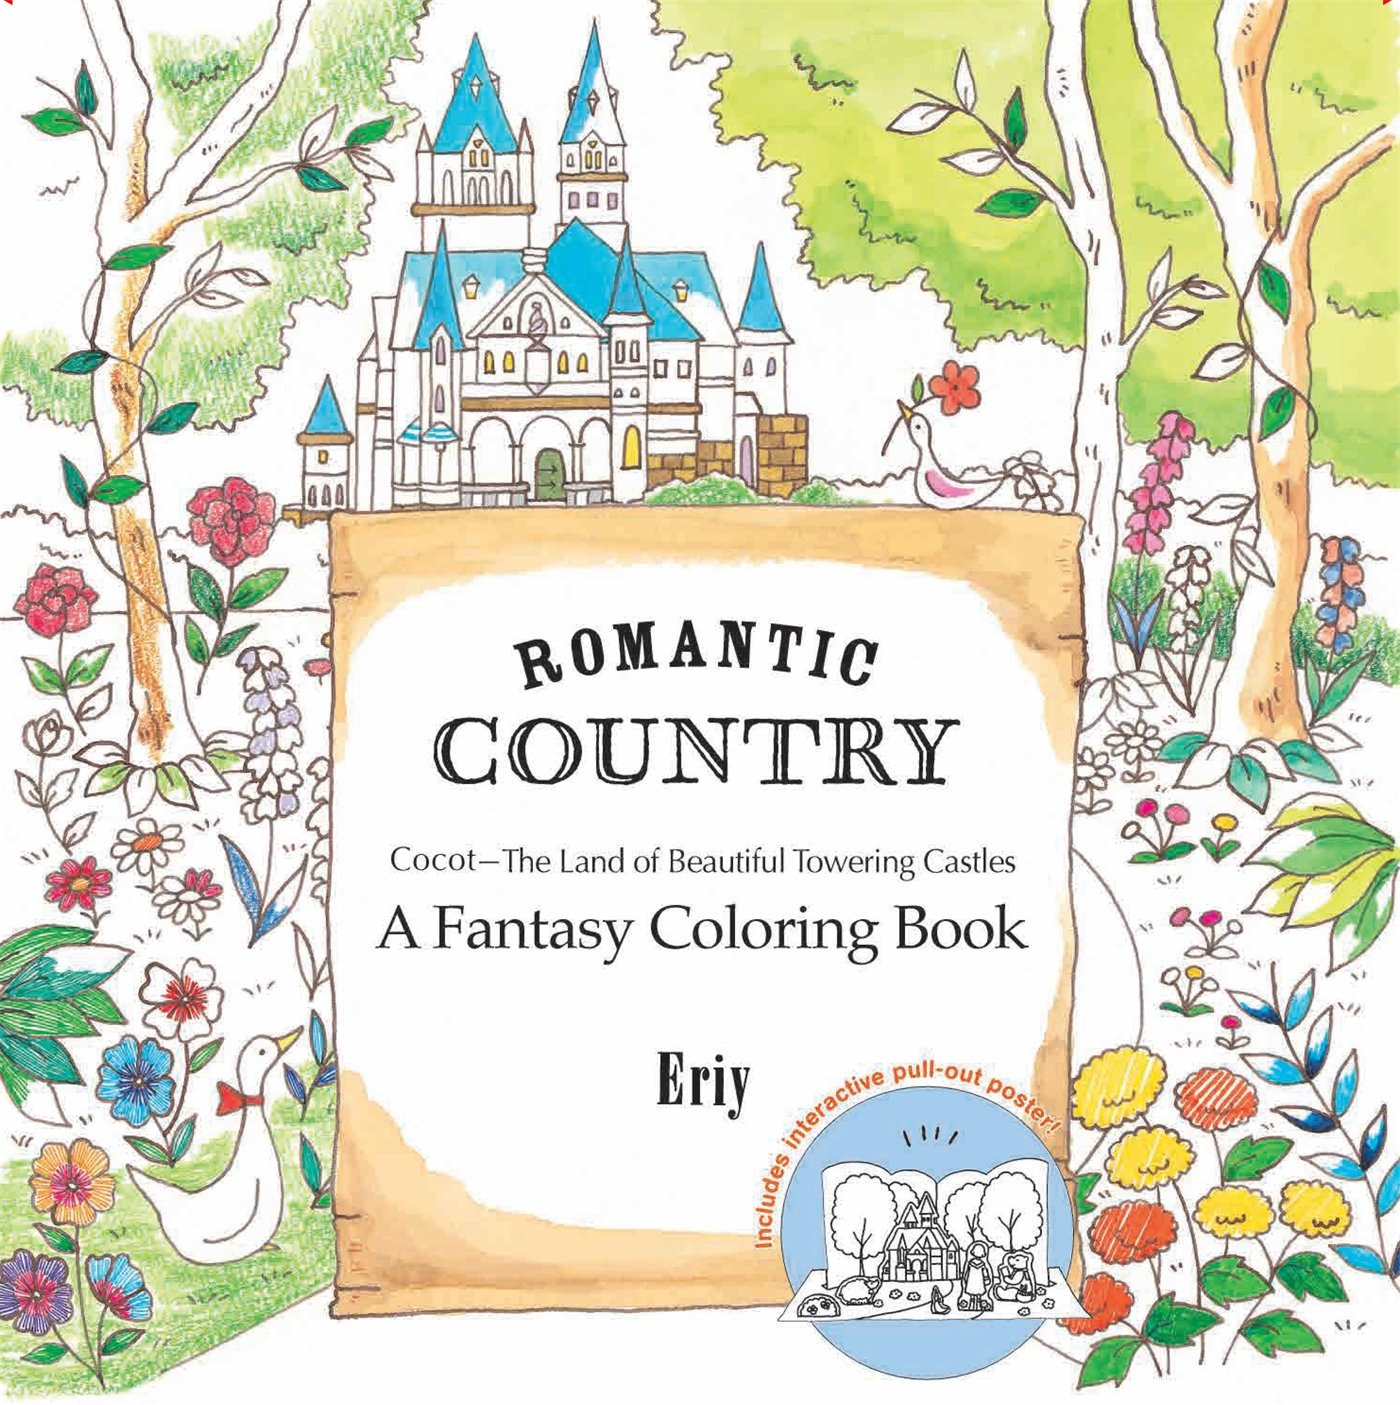 Romantic Country A Fantasy Coloring Book Eriy Amazon